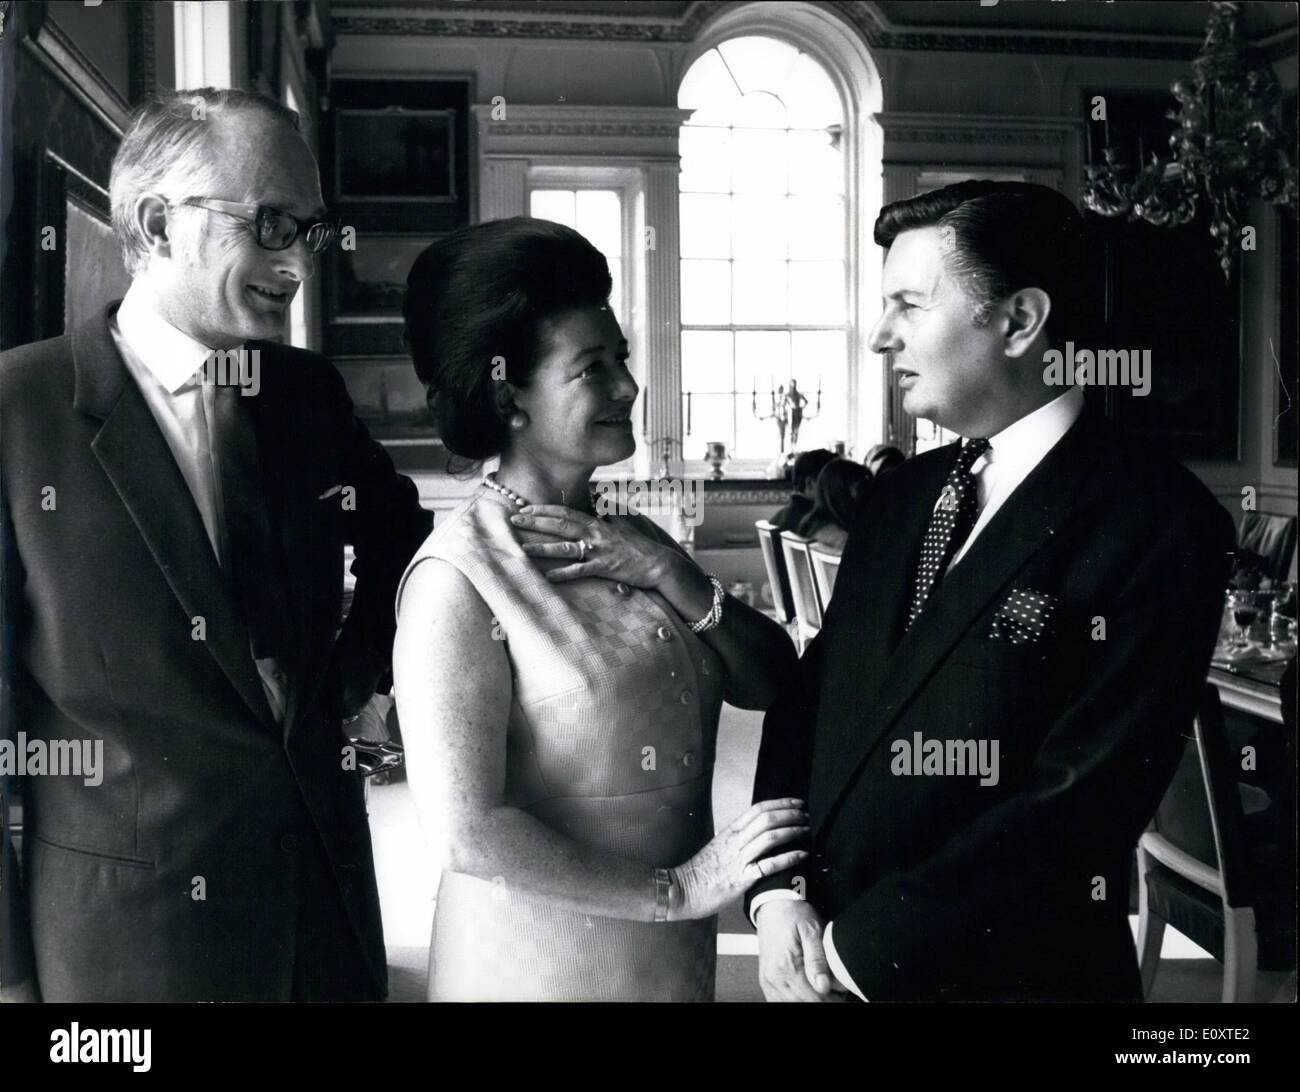 Sep. 09, 1967 - 5,000 - worth of antique jewellery stolen by raiders from a van on its way to Woburn Abbey. Antique Jewellery worth $ 15,000 was stolen today by masked raiders who ambushed the van carrying it from London to Woburn Abbey, the home of the Duke and Duchess of Bedford. The Jewellery was on its way from the Duke's family jewellers in the West End to an antique fair, staged by the Duchess, at Woburn Abbey Photo shows: Barry Wreland, director of Cellingwood's, the Duke's Jewellers, who was in the estate car when it was attacked by the raiders (seen right) is seen telling the story - Stock Image